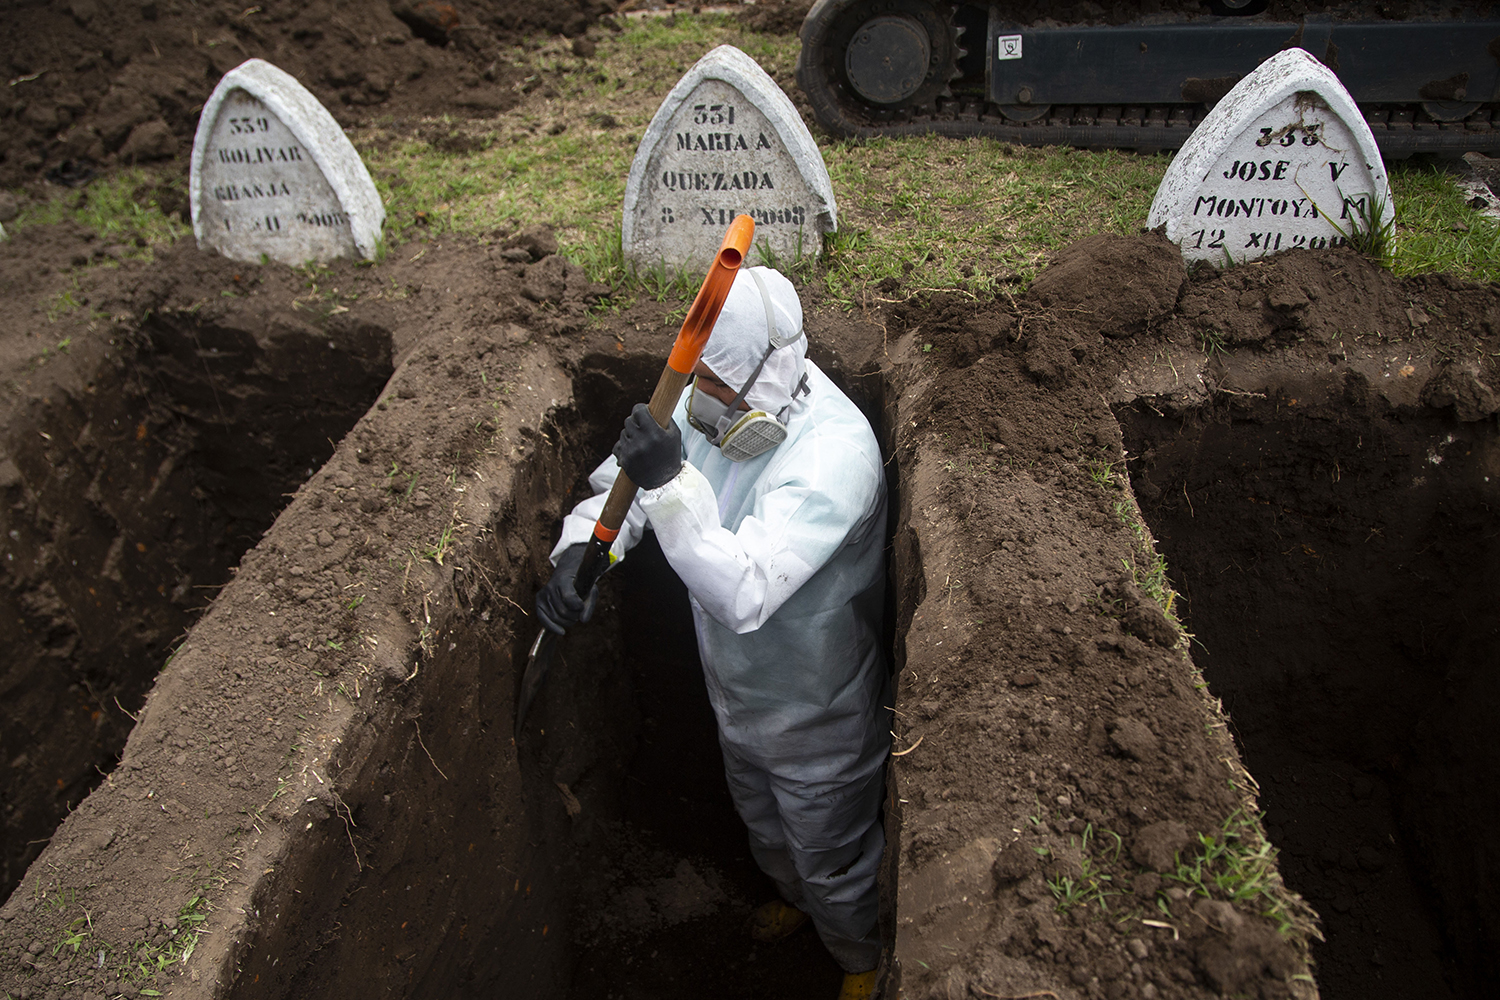 A worker wearing biosecurity equipment digs graves for coronavirus victims at the San Diego Cemetery in Quito, Ecuador, on July 21. CRISTINA VEGA RHOR/AFP via Getty Images